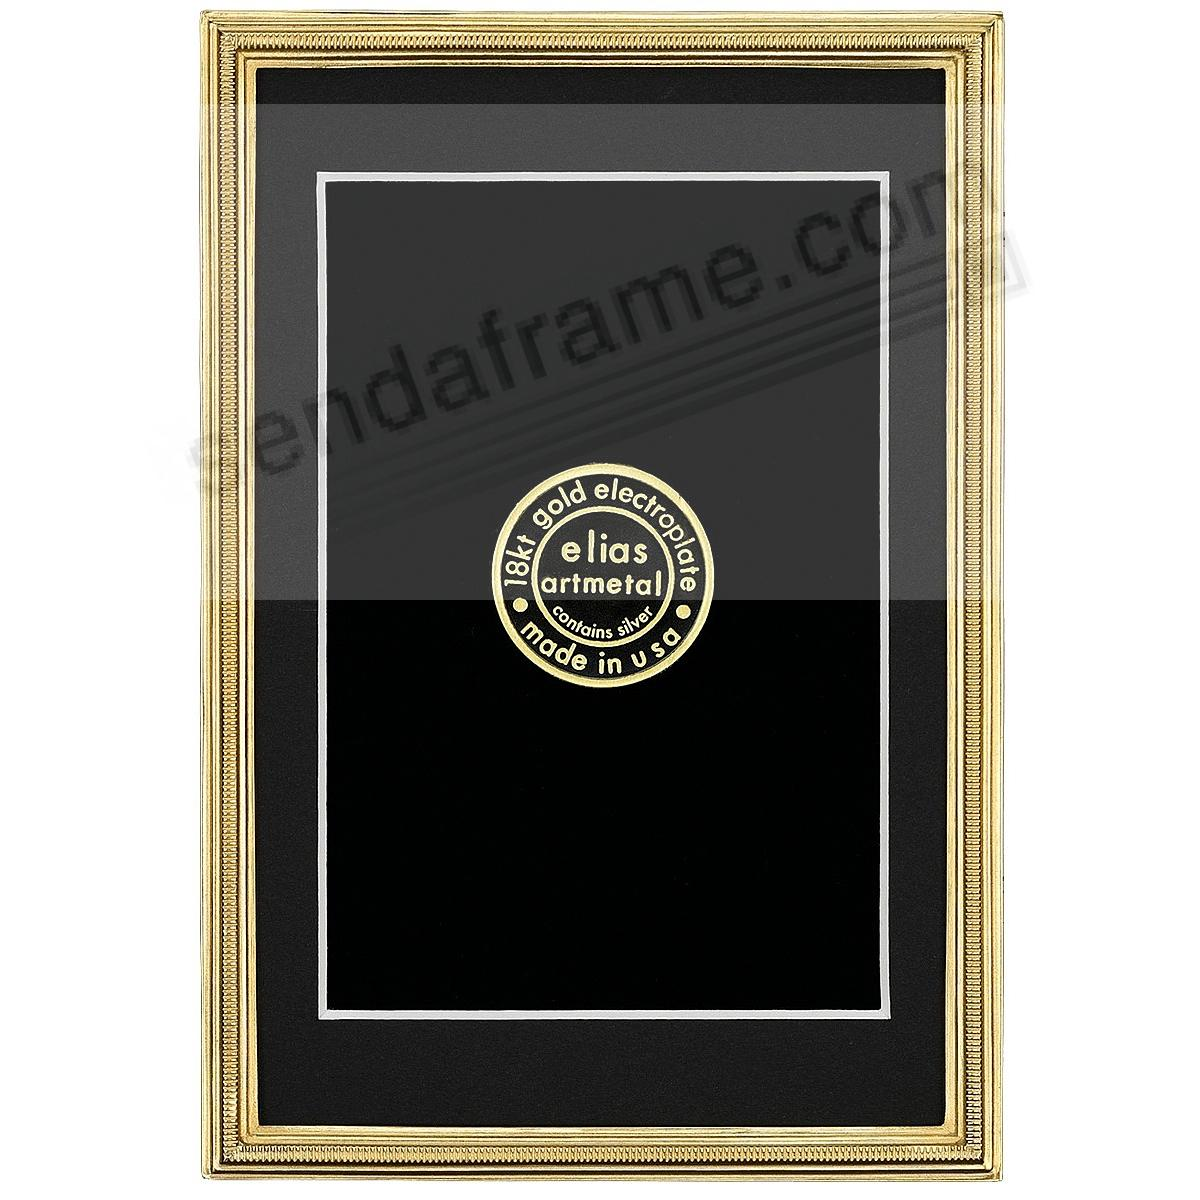 ZIPPER Fine 18kt Museum Gold over Pewter frame 5x7/4x6 by Elias Artmetal®